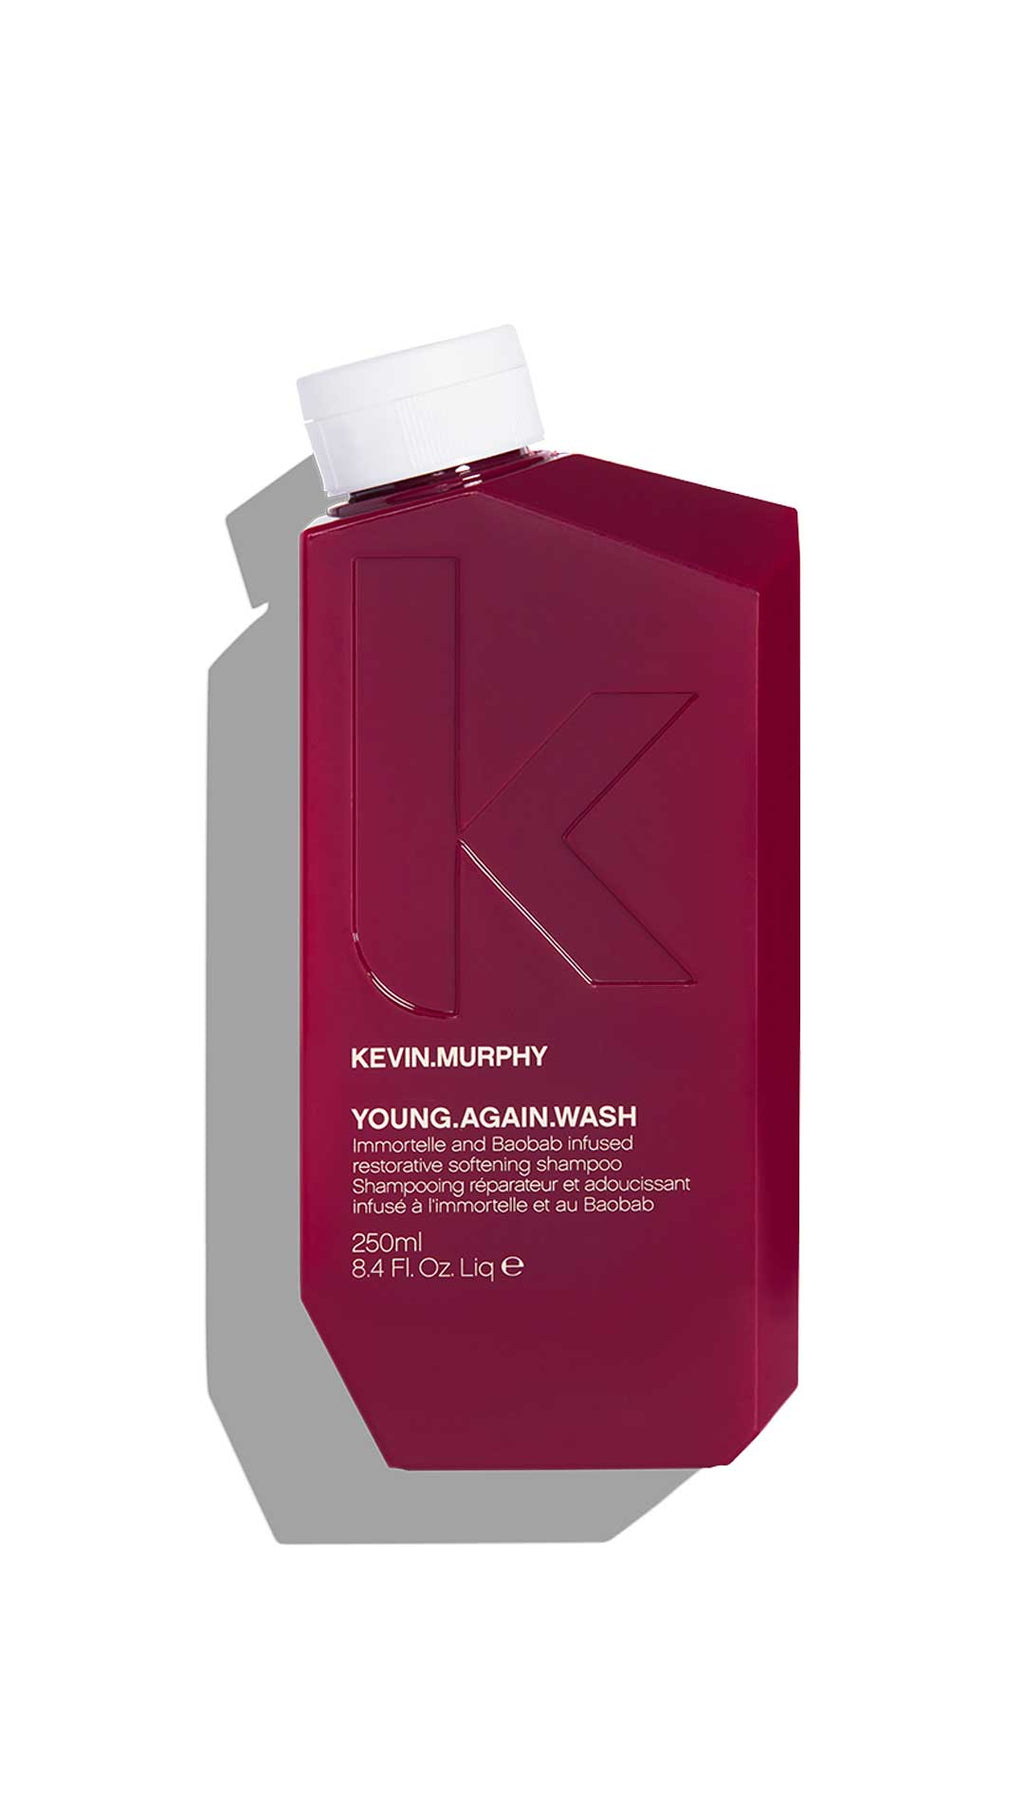 YOUNG.AGAIN.WASH - KEVIN MURPHY